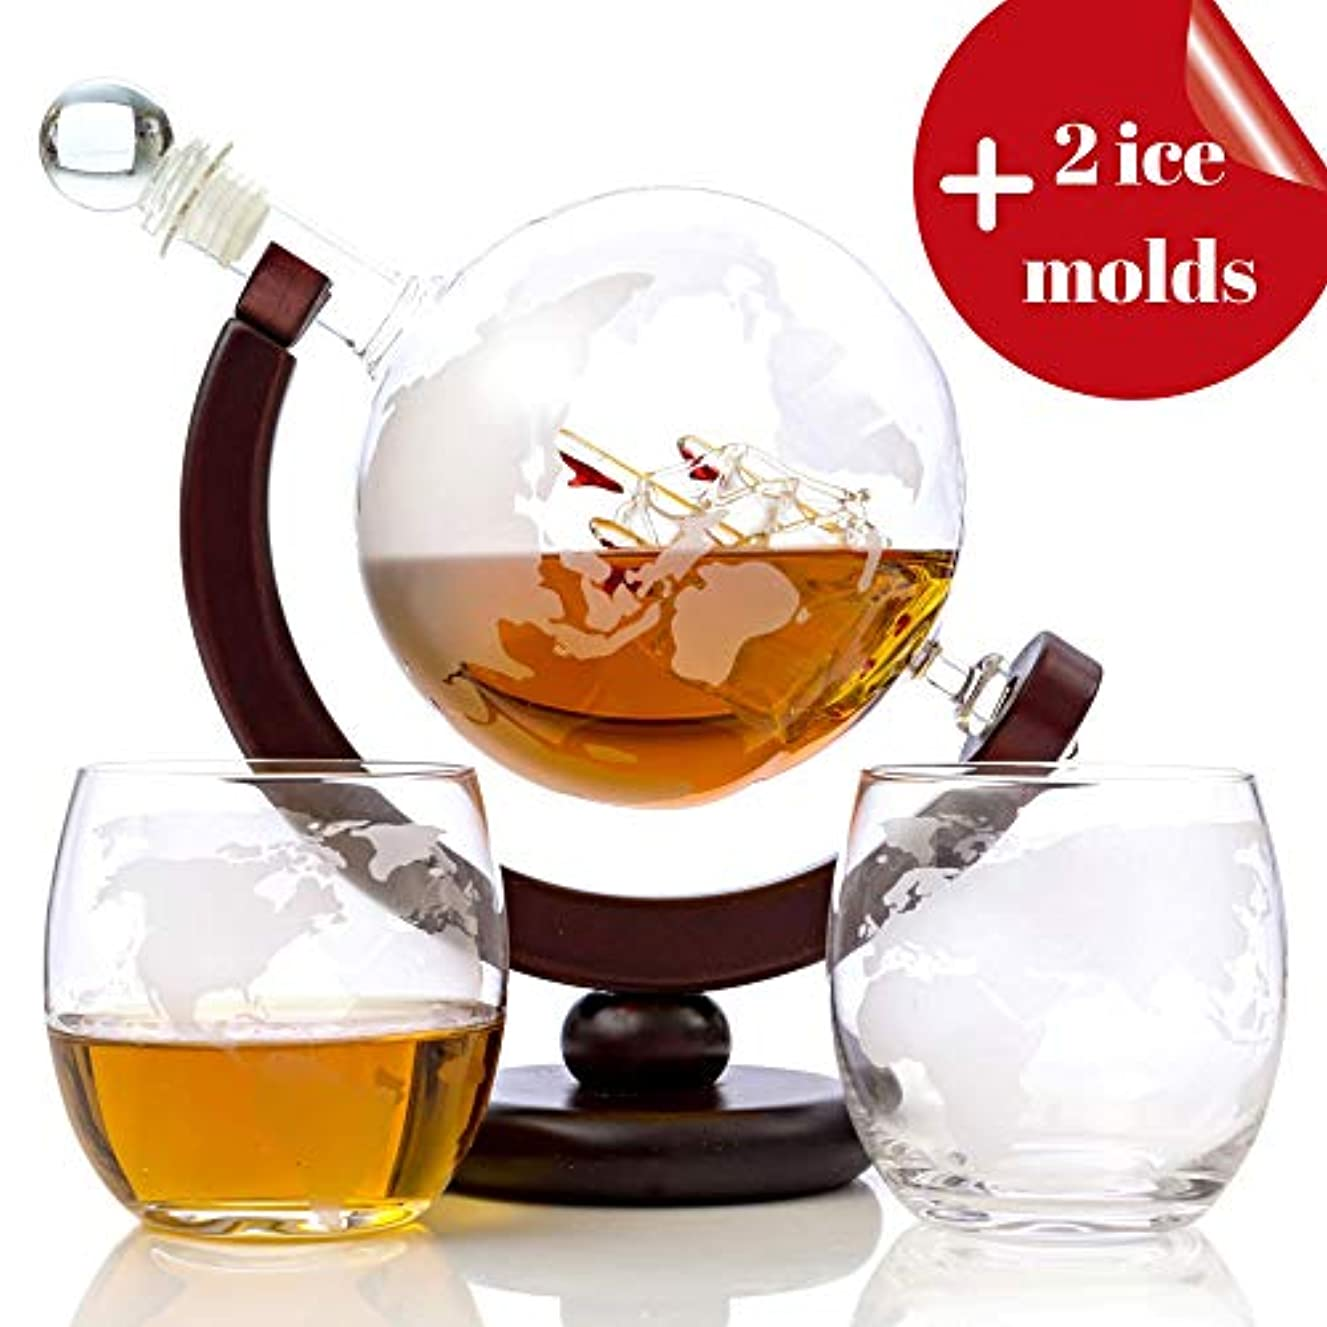 Whiskey Globe Decanter Set - 850 ml with Silicone Ice Molds & Two World Etched Whiskey Glasses (300ml) Wooden Base and Safe Package - Perfect Gift Set for Liquor, Scotch, Bourbon, Vodka and Wine